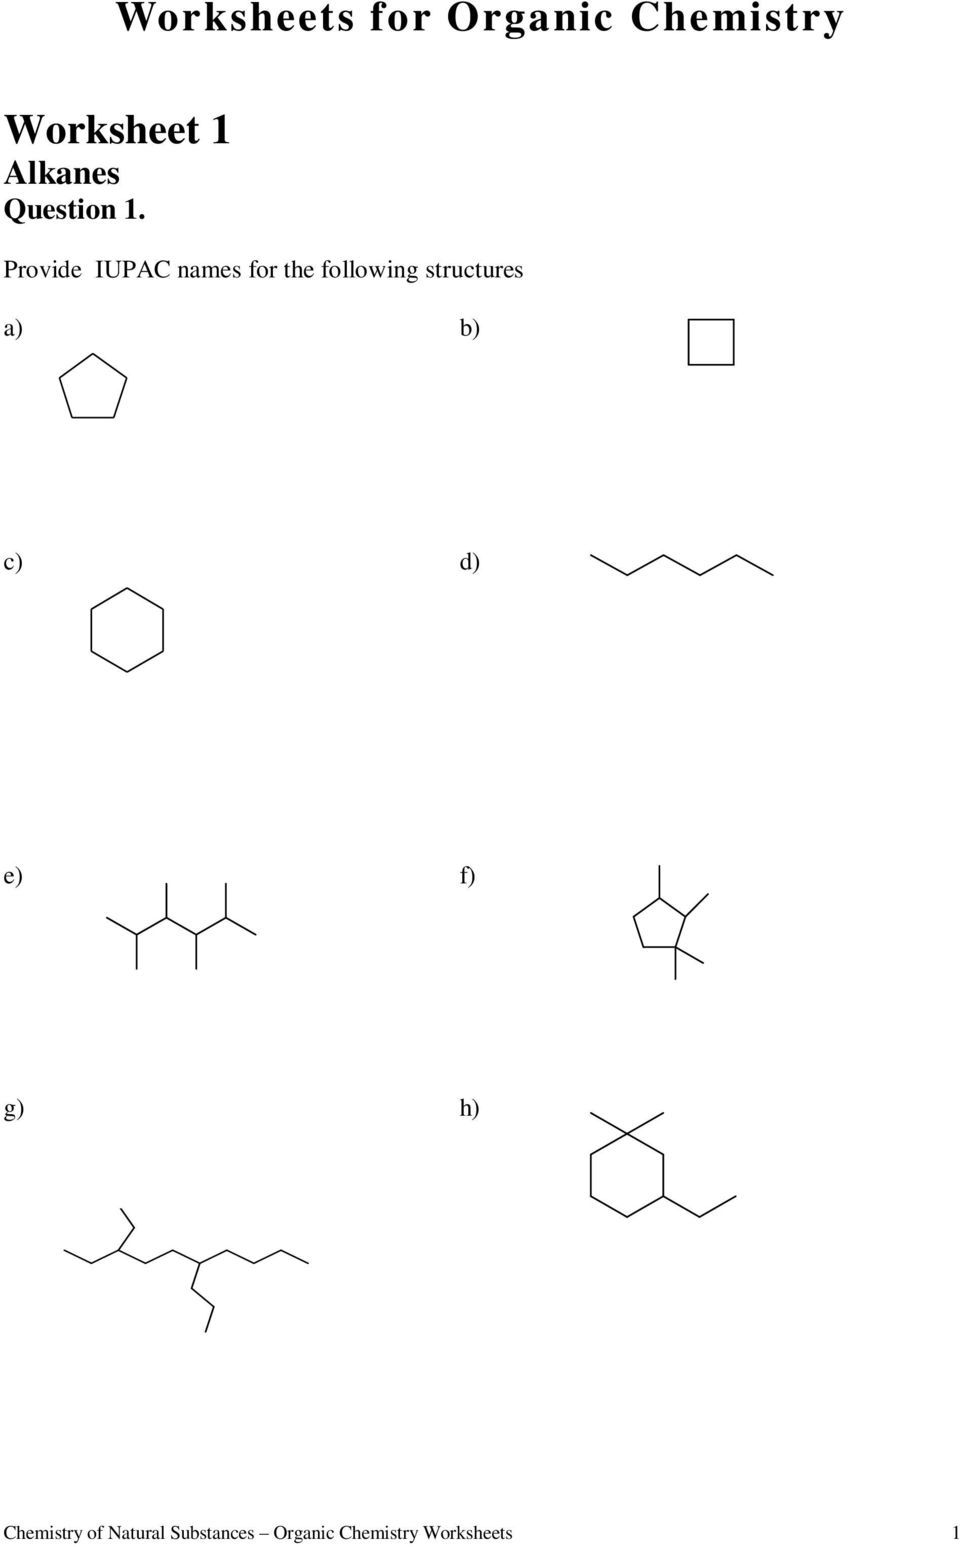 Worksheets for Organic Chemistry - PDF Free Download